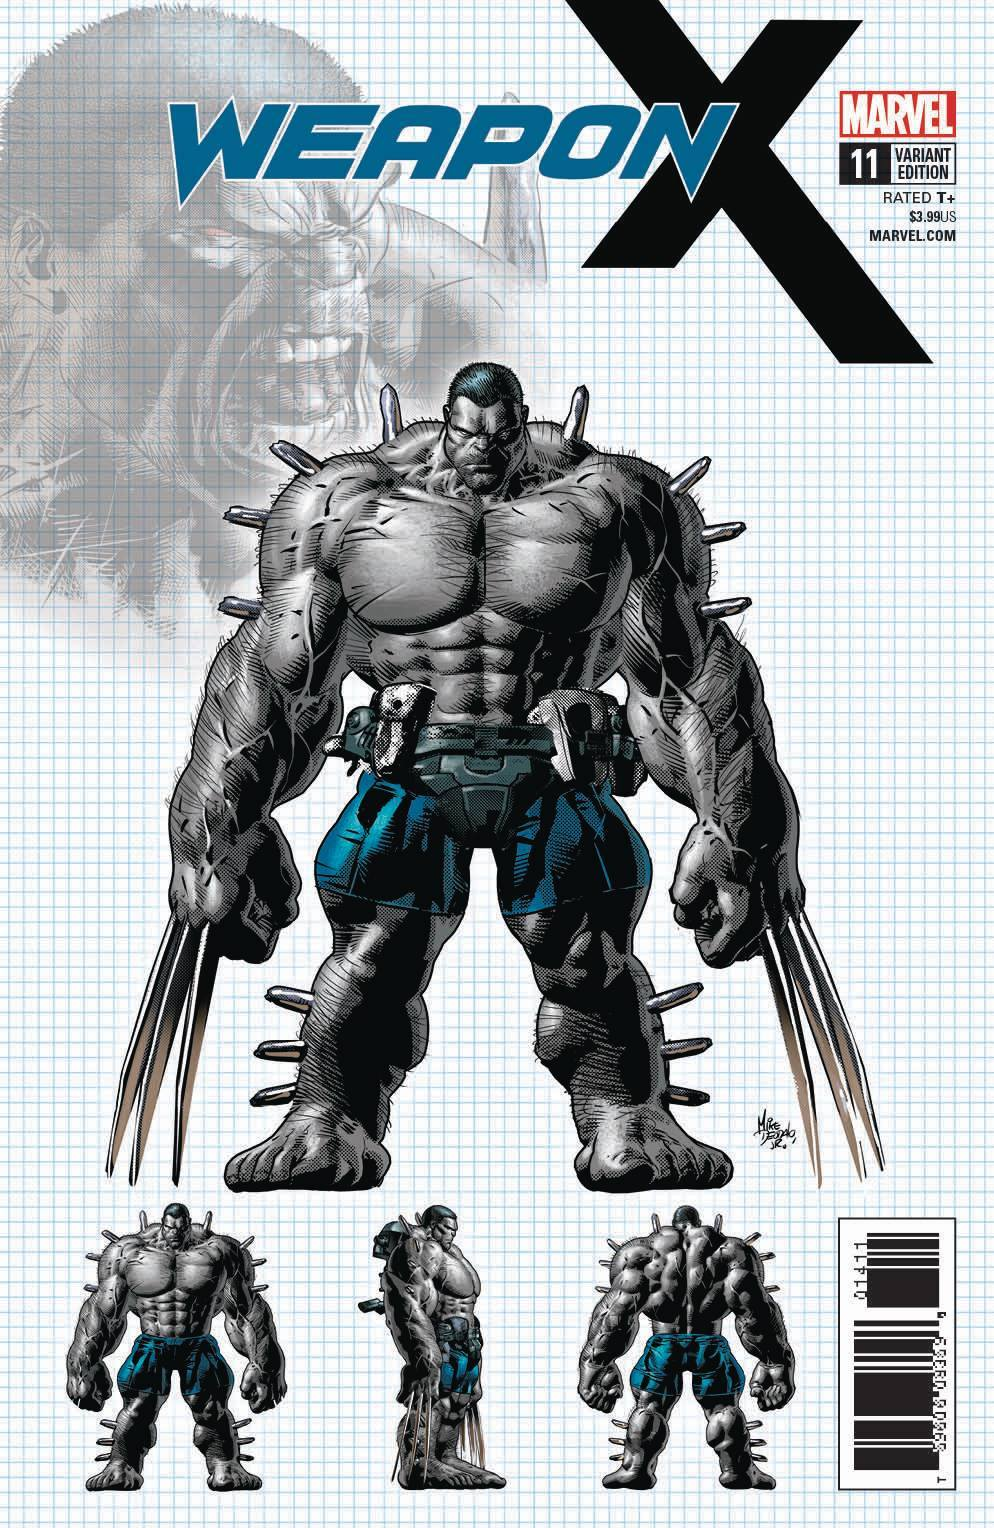 Weapon X #11 1:25 Mike Deodato Cover - UNDERGROUND